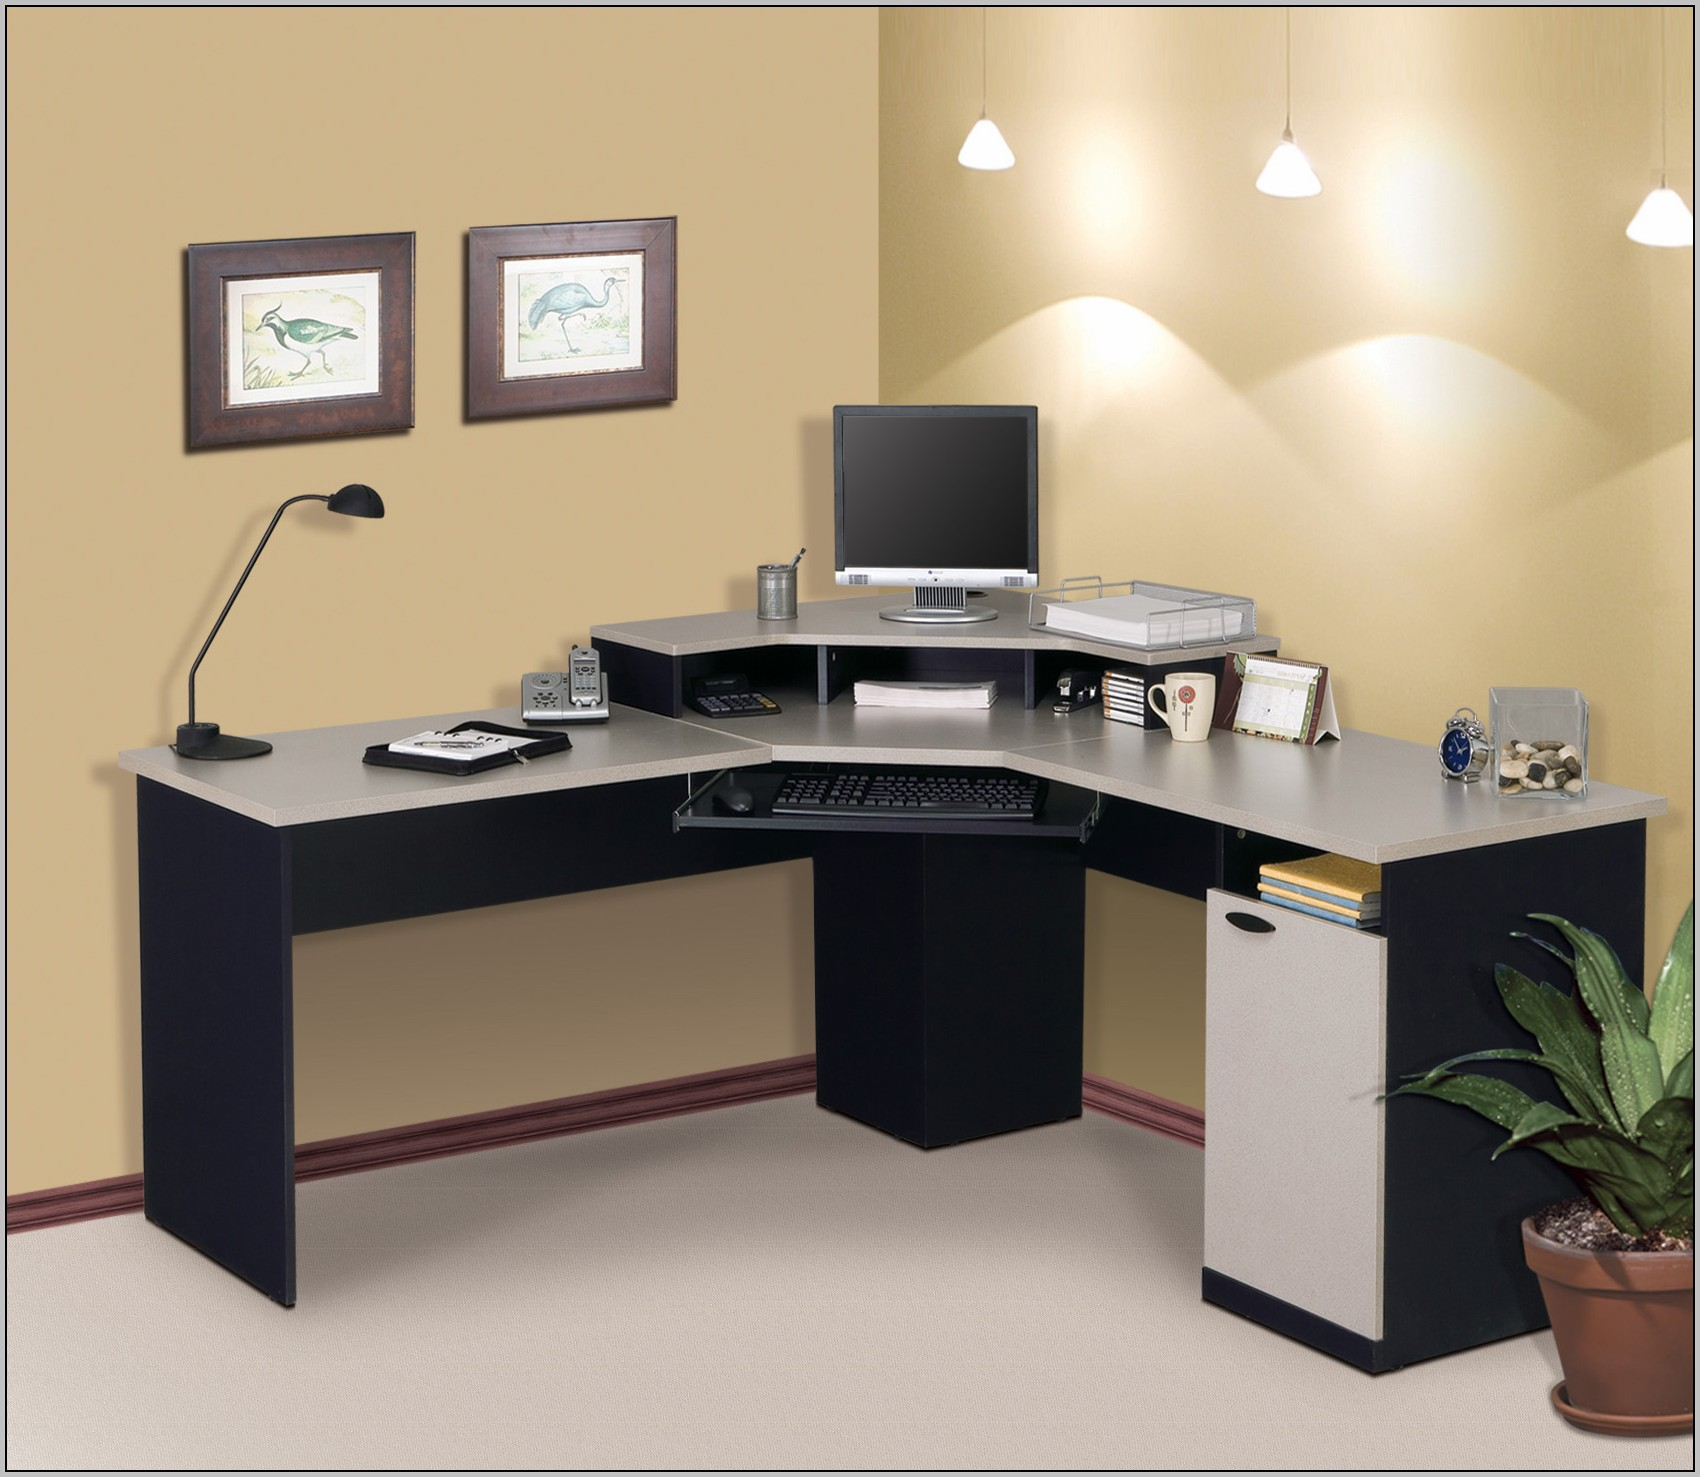 Home Computer Workstation Ideas Computer Desk Ideas Home Desk Home Design Ideas